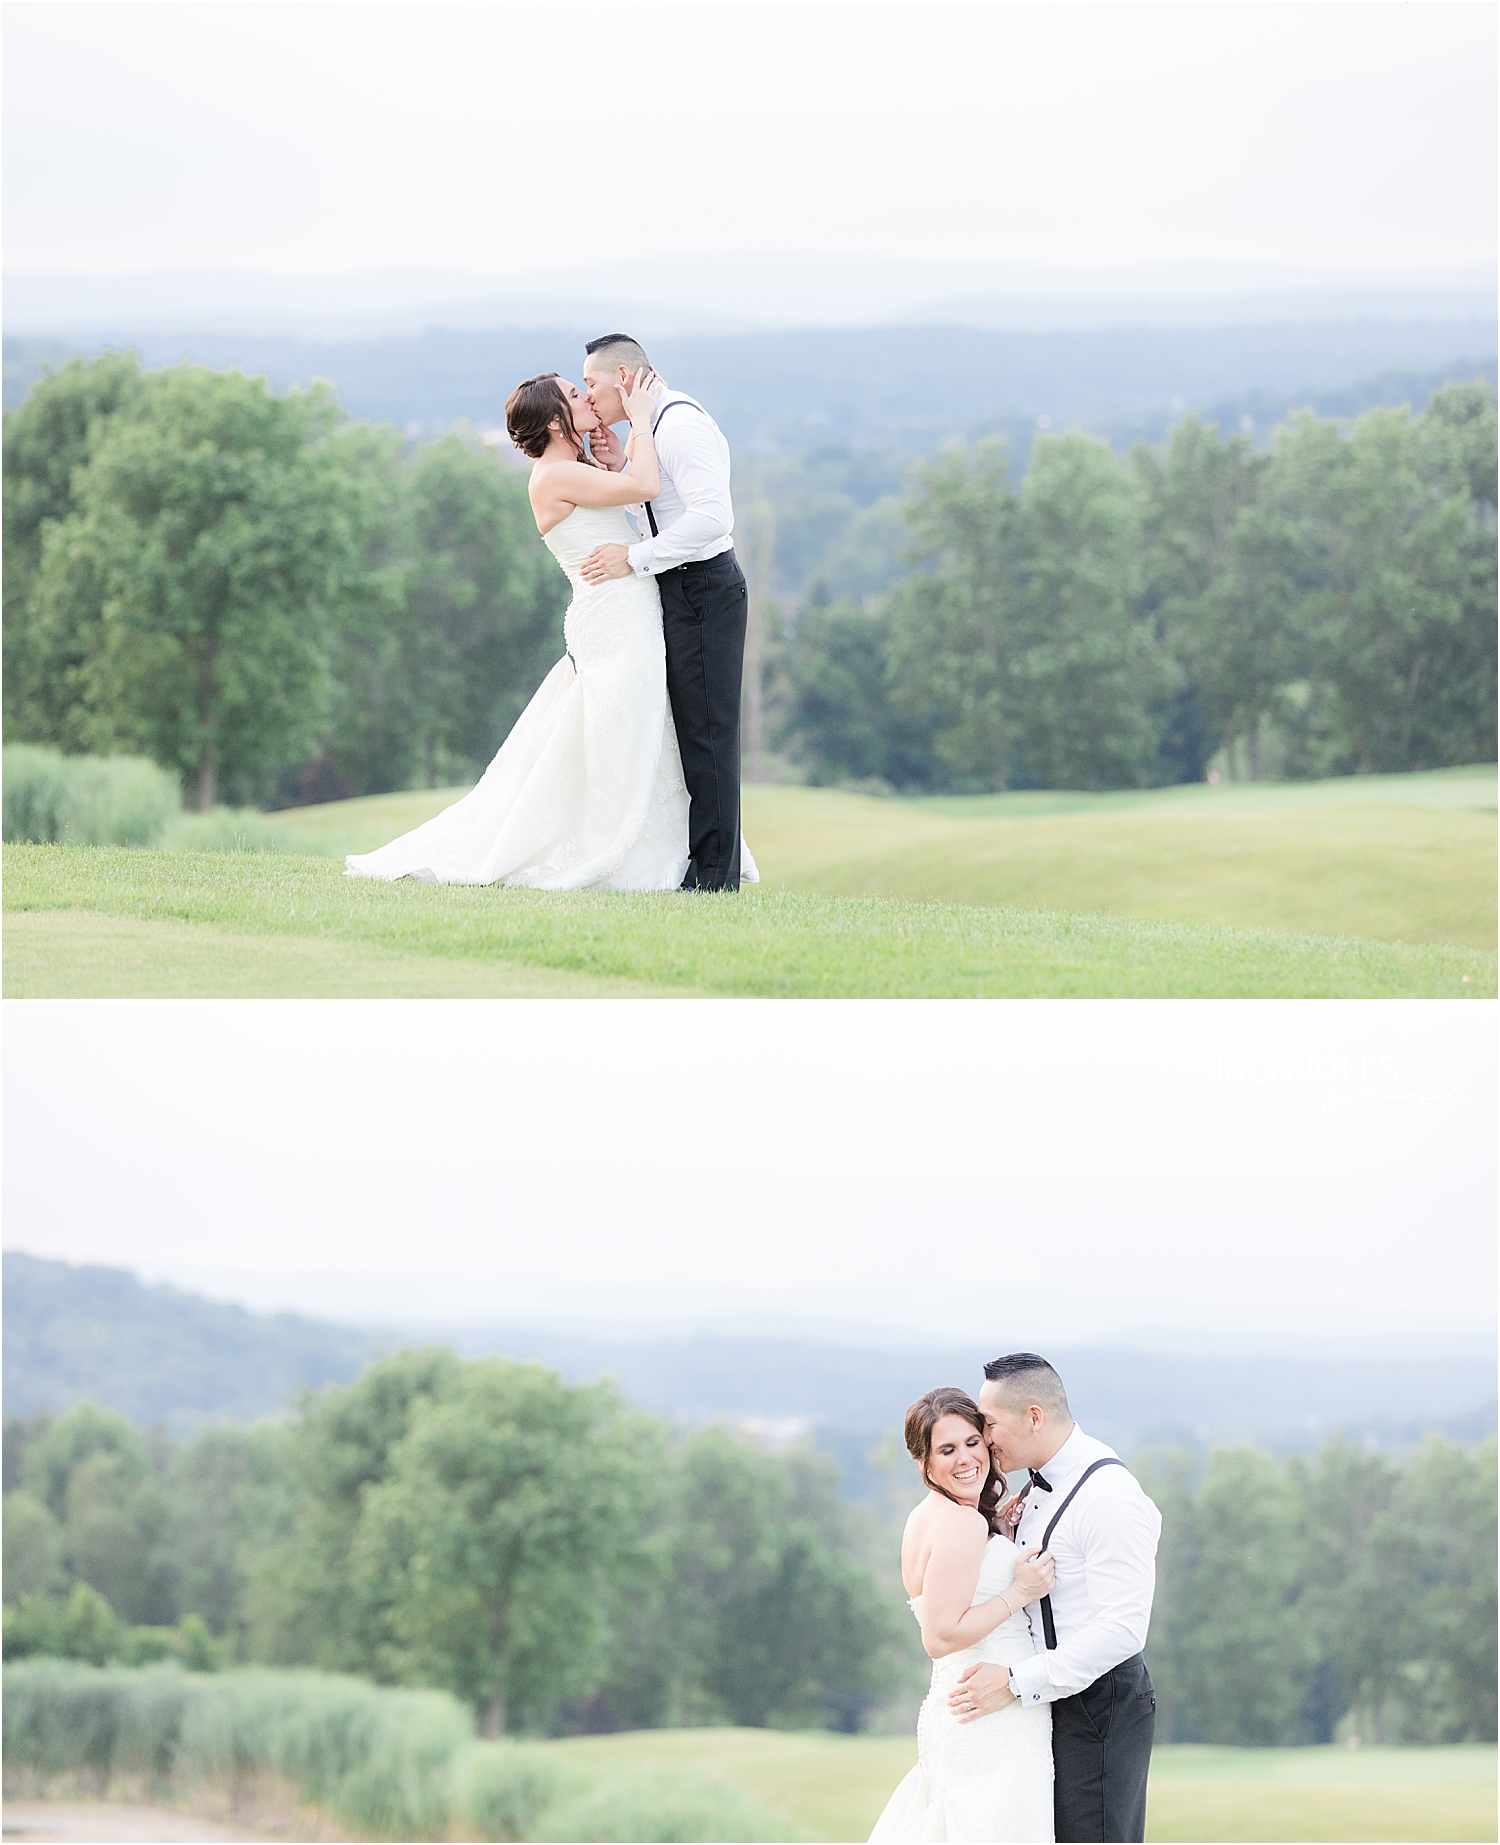 romantic sunset photos in natural light at Skyview Golf Club